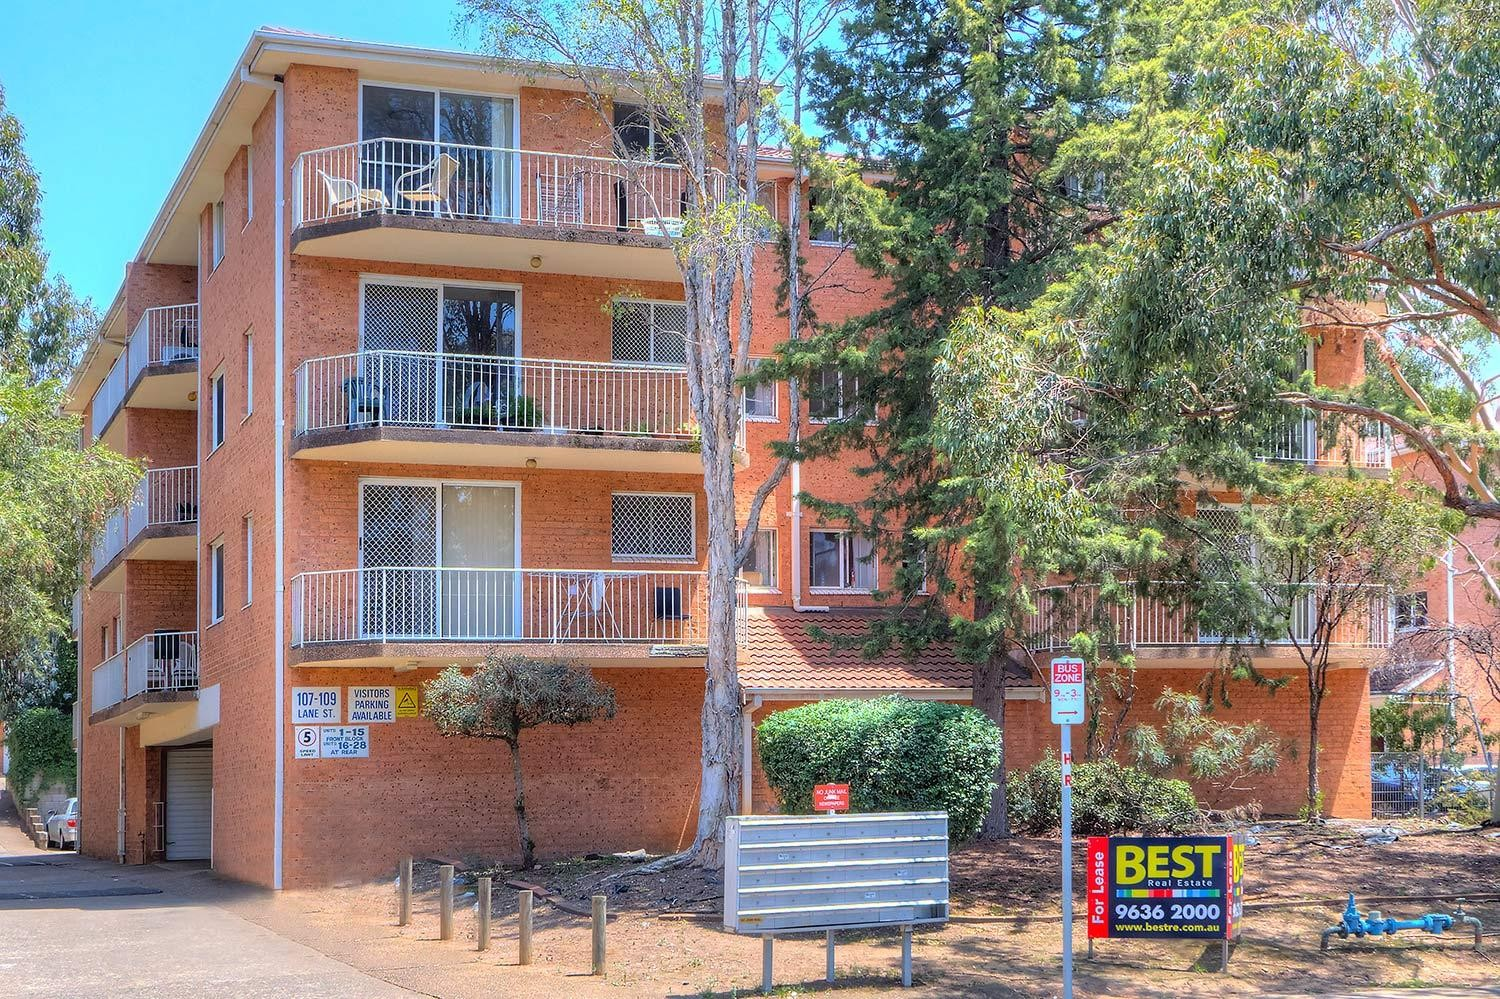 New Listing! Directly Opposite Woolworth's!